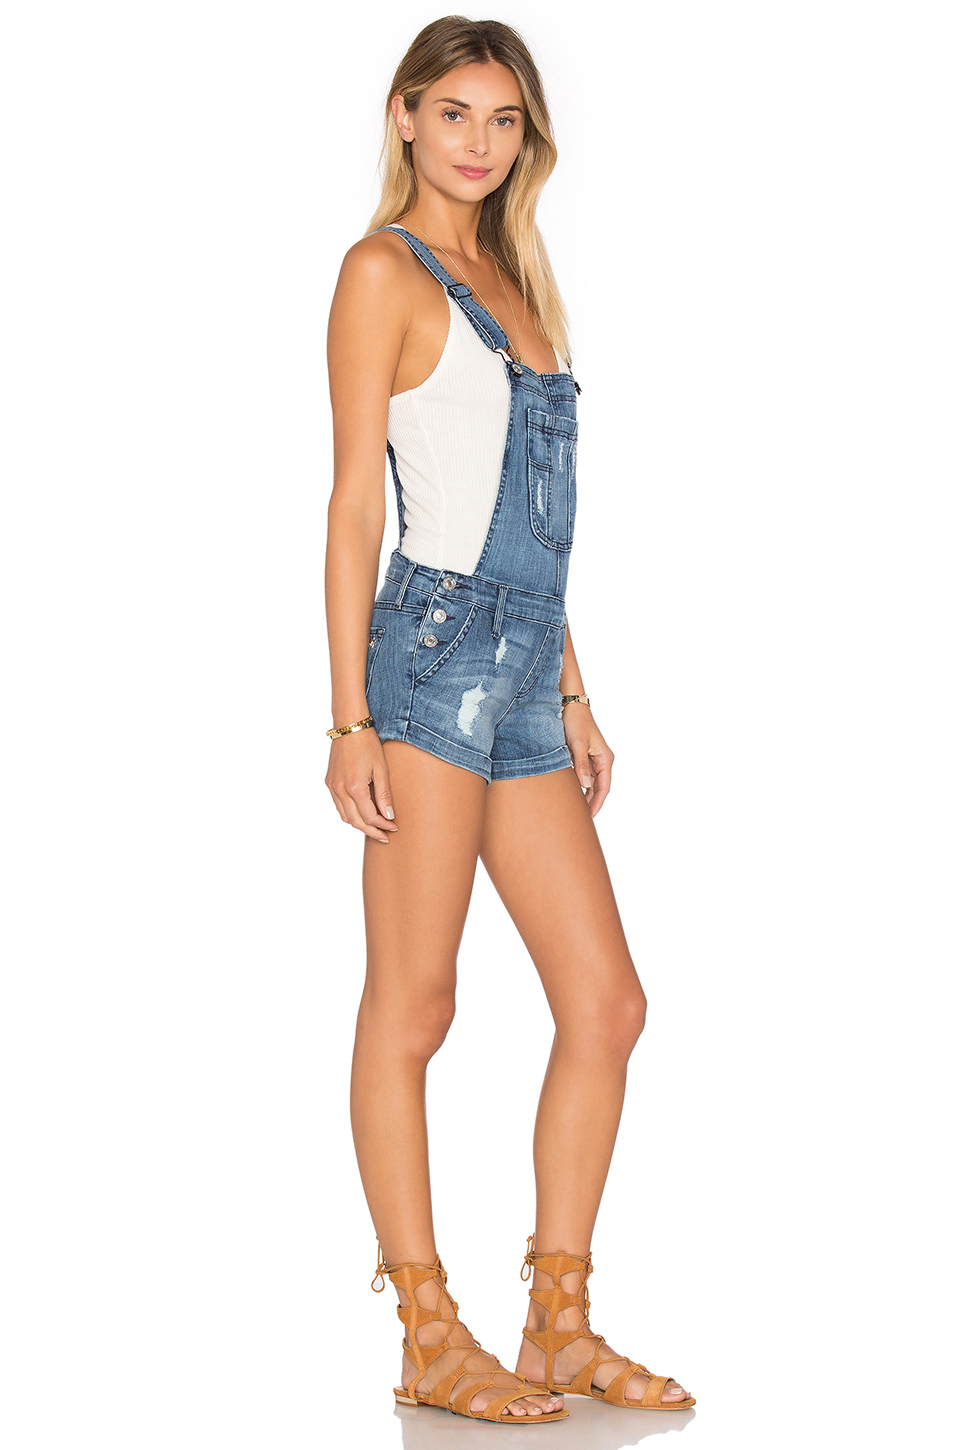 Shop for Black Orchid Gia Slant Hem Overall in Bad Company at REVOLVE. Free day shipping and returns, 30 day price match guarantee.